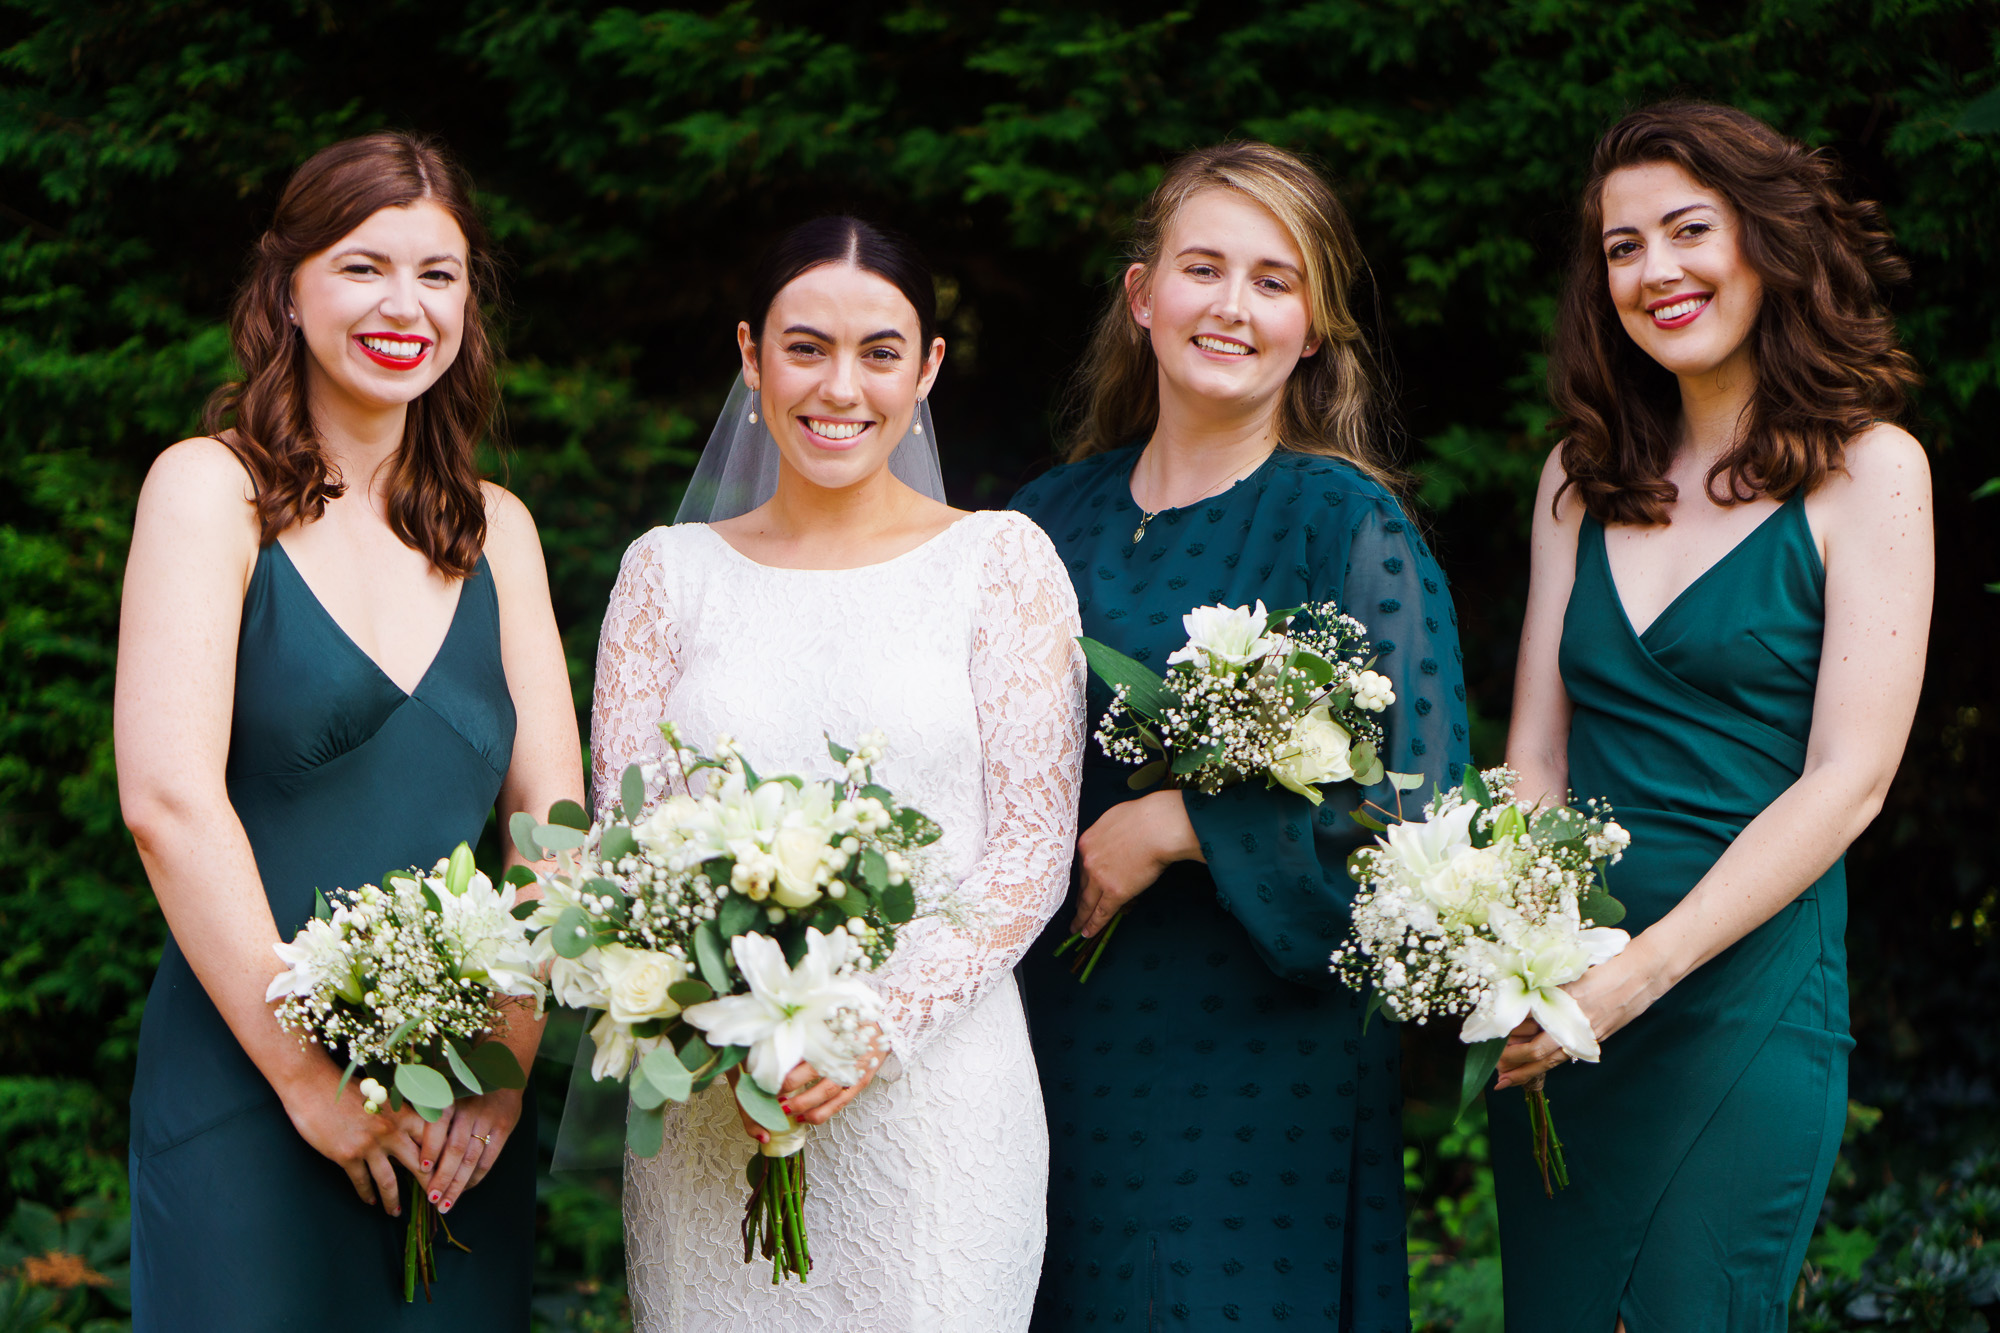 photo of bride and bridesmaids in green